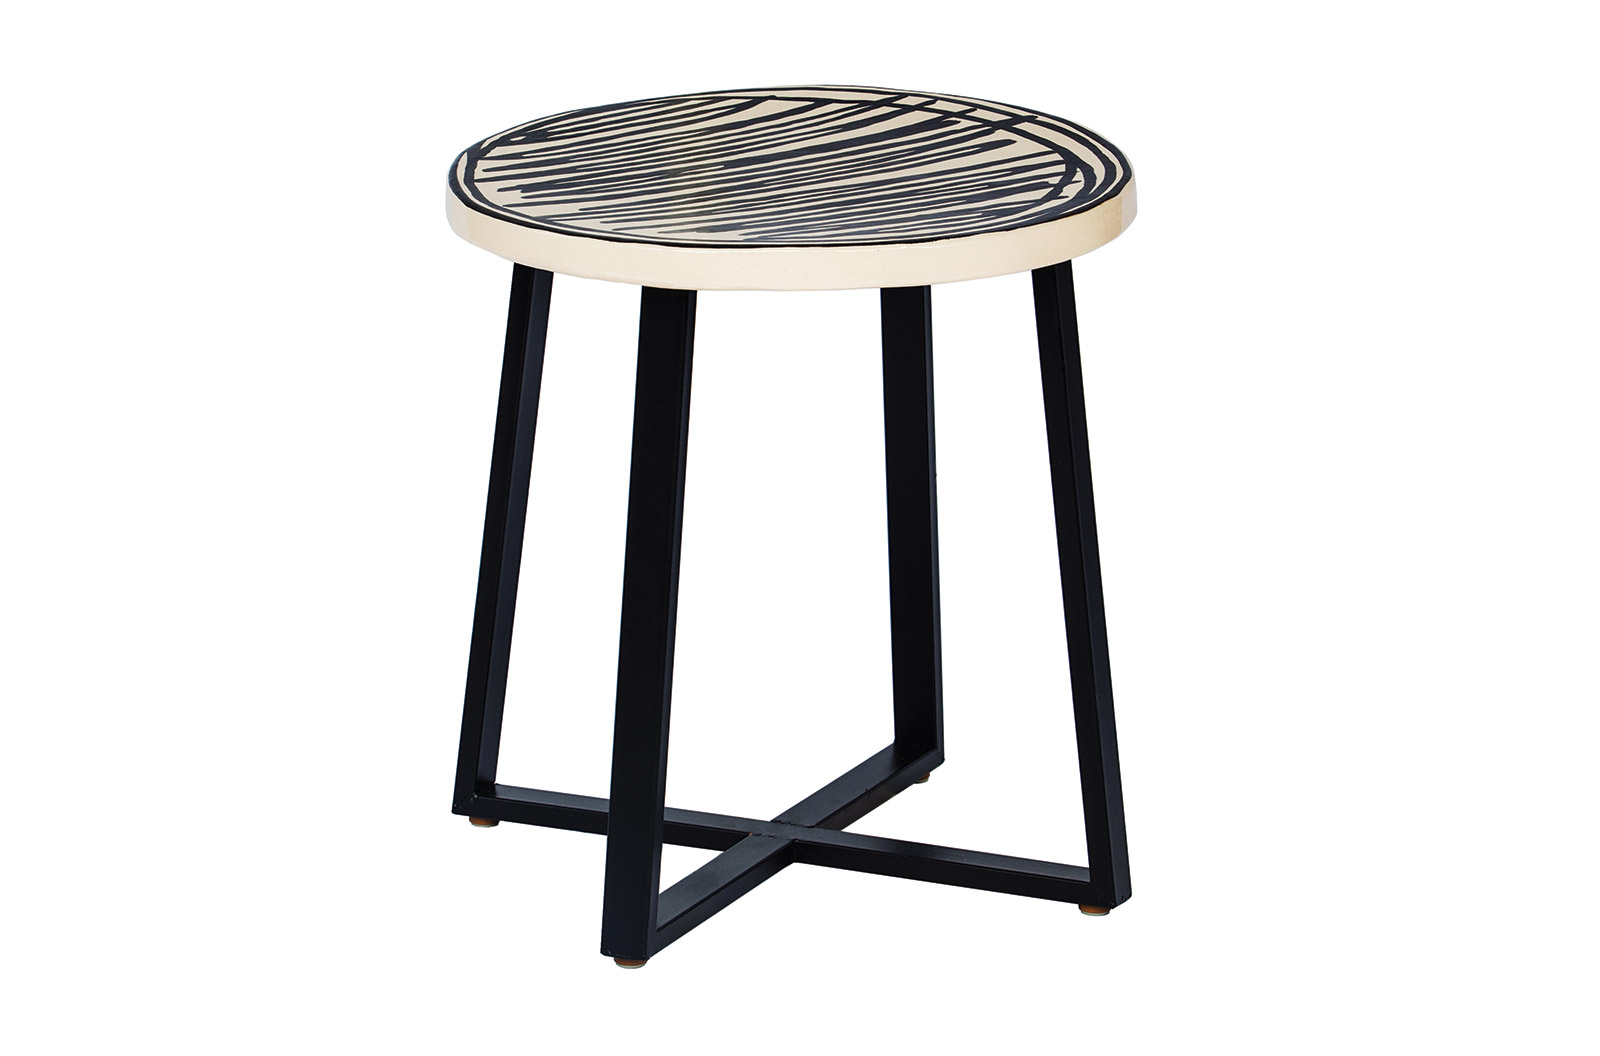 ceramic serengeti accent table cer web white furniture collection target floor rugs metal cabinet legs small lamp for less recycled wood narrow bar tall bedside tables with